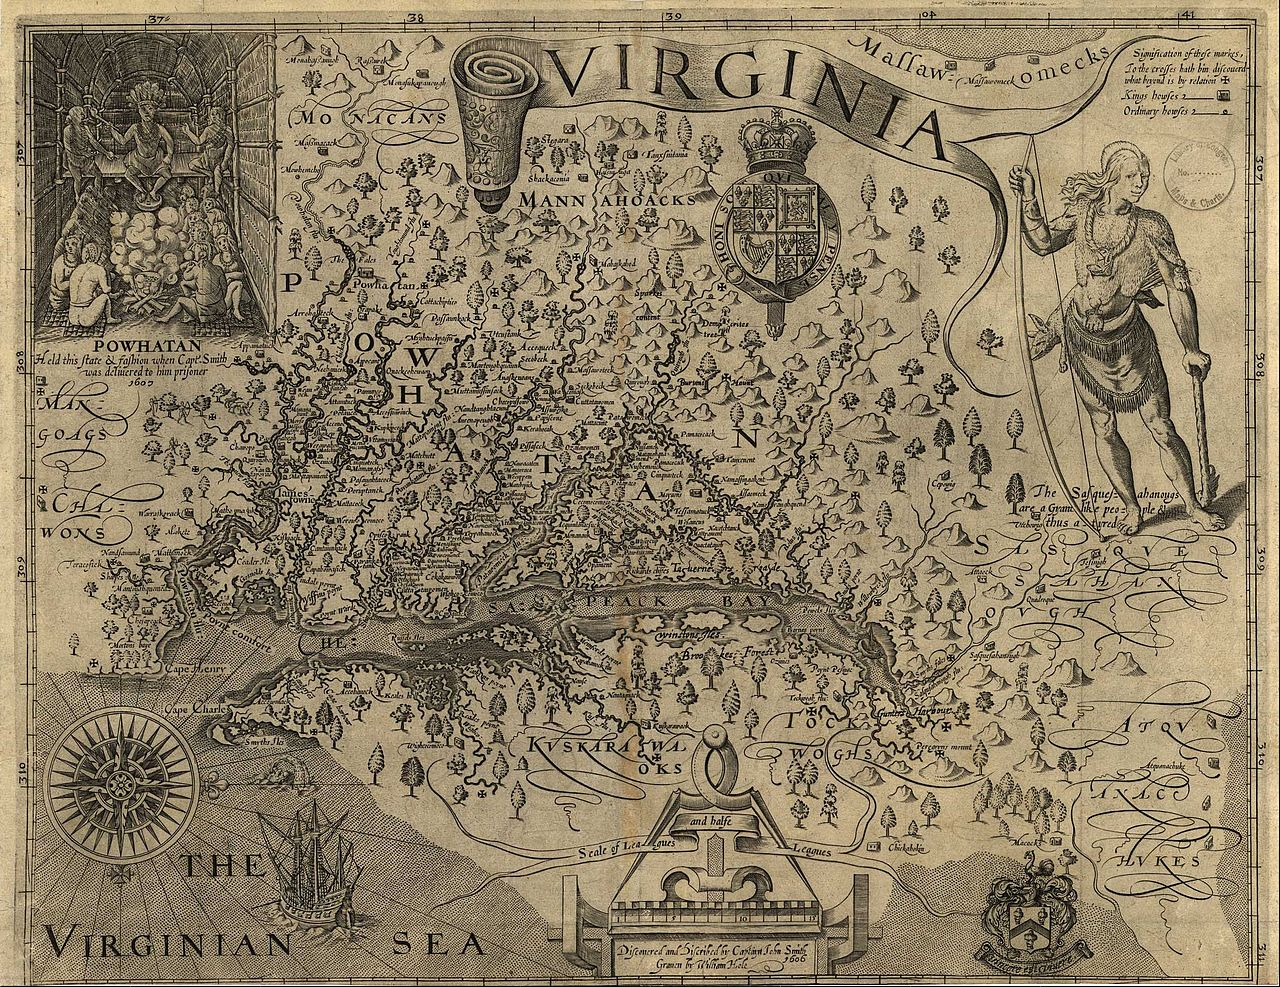 John Smith, A Map of Virginia: With a Description of the Countrey, the Commodities, People, Government and Religion (1612)